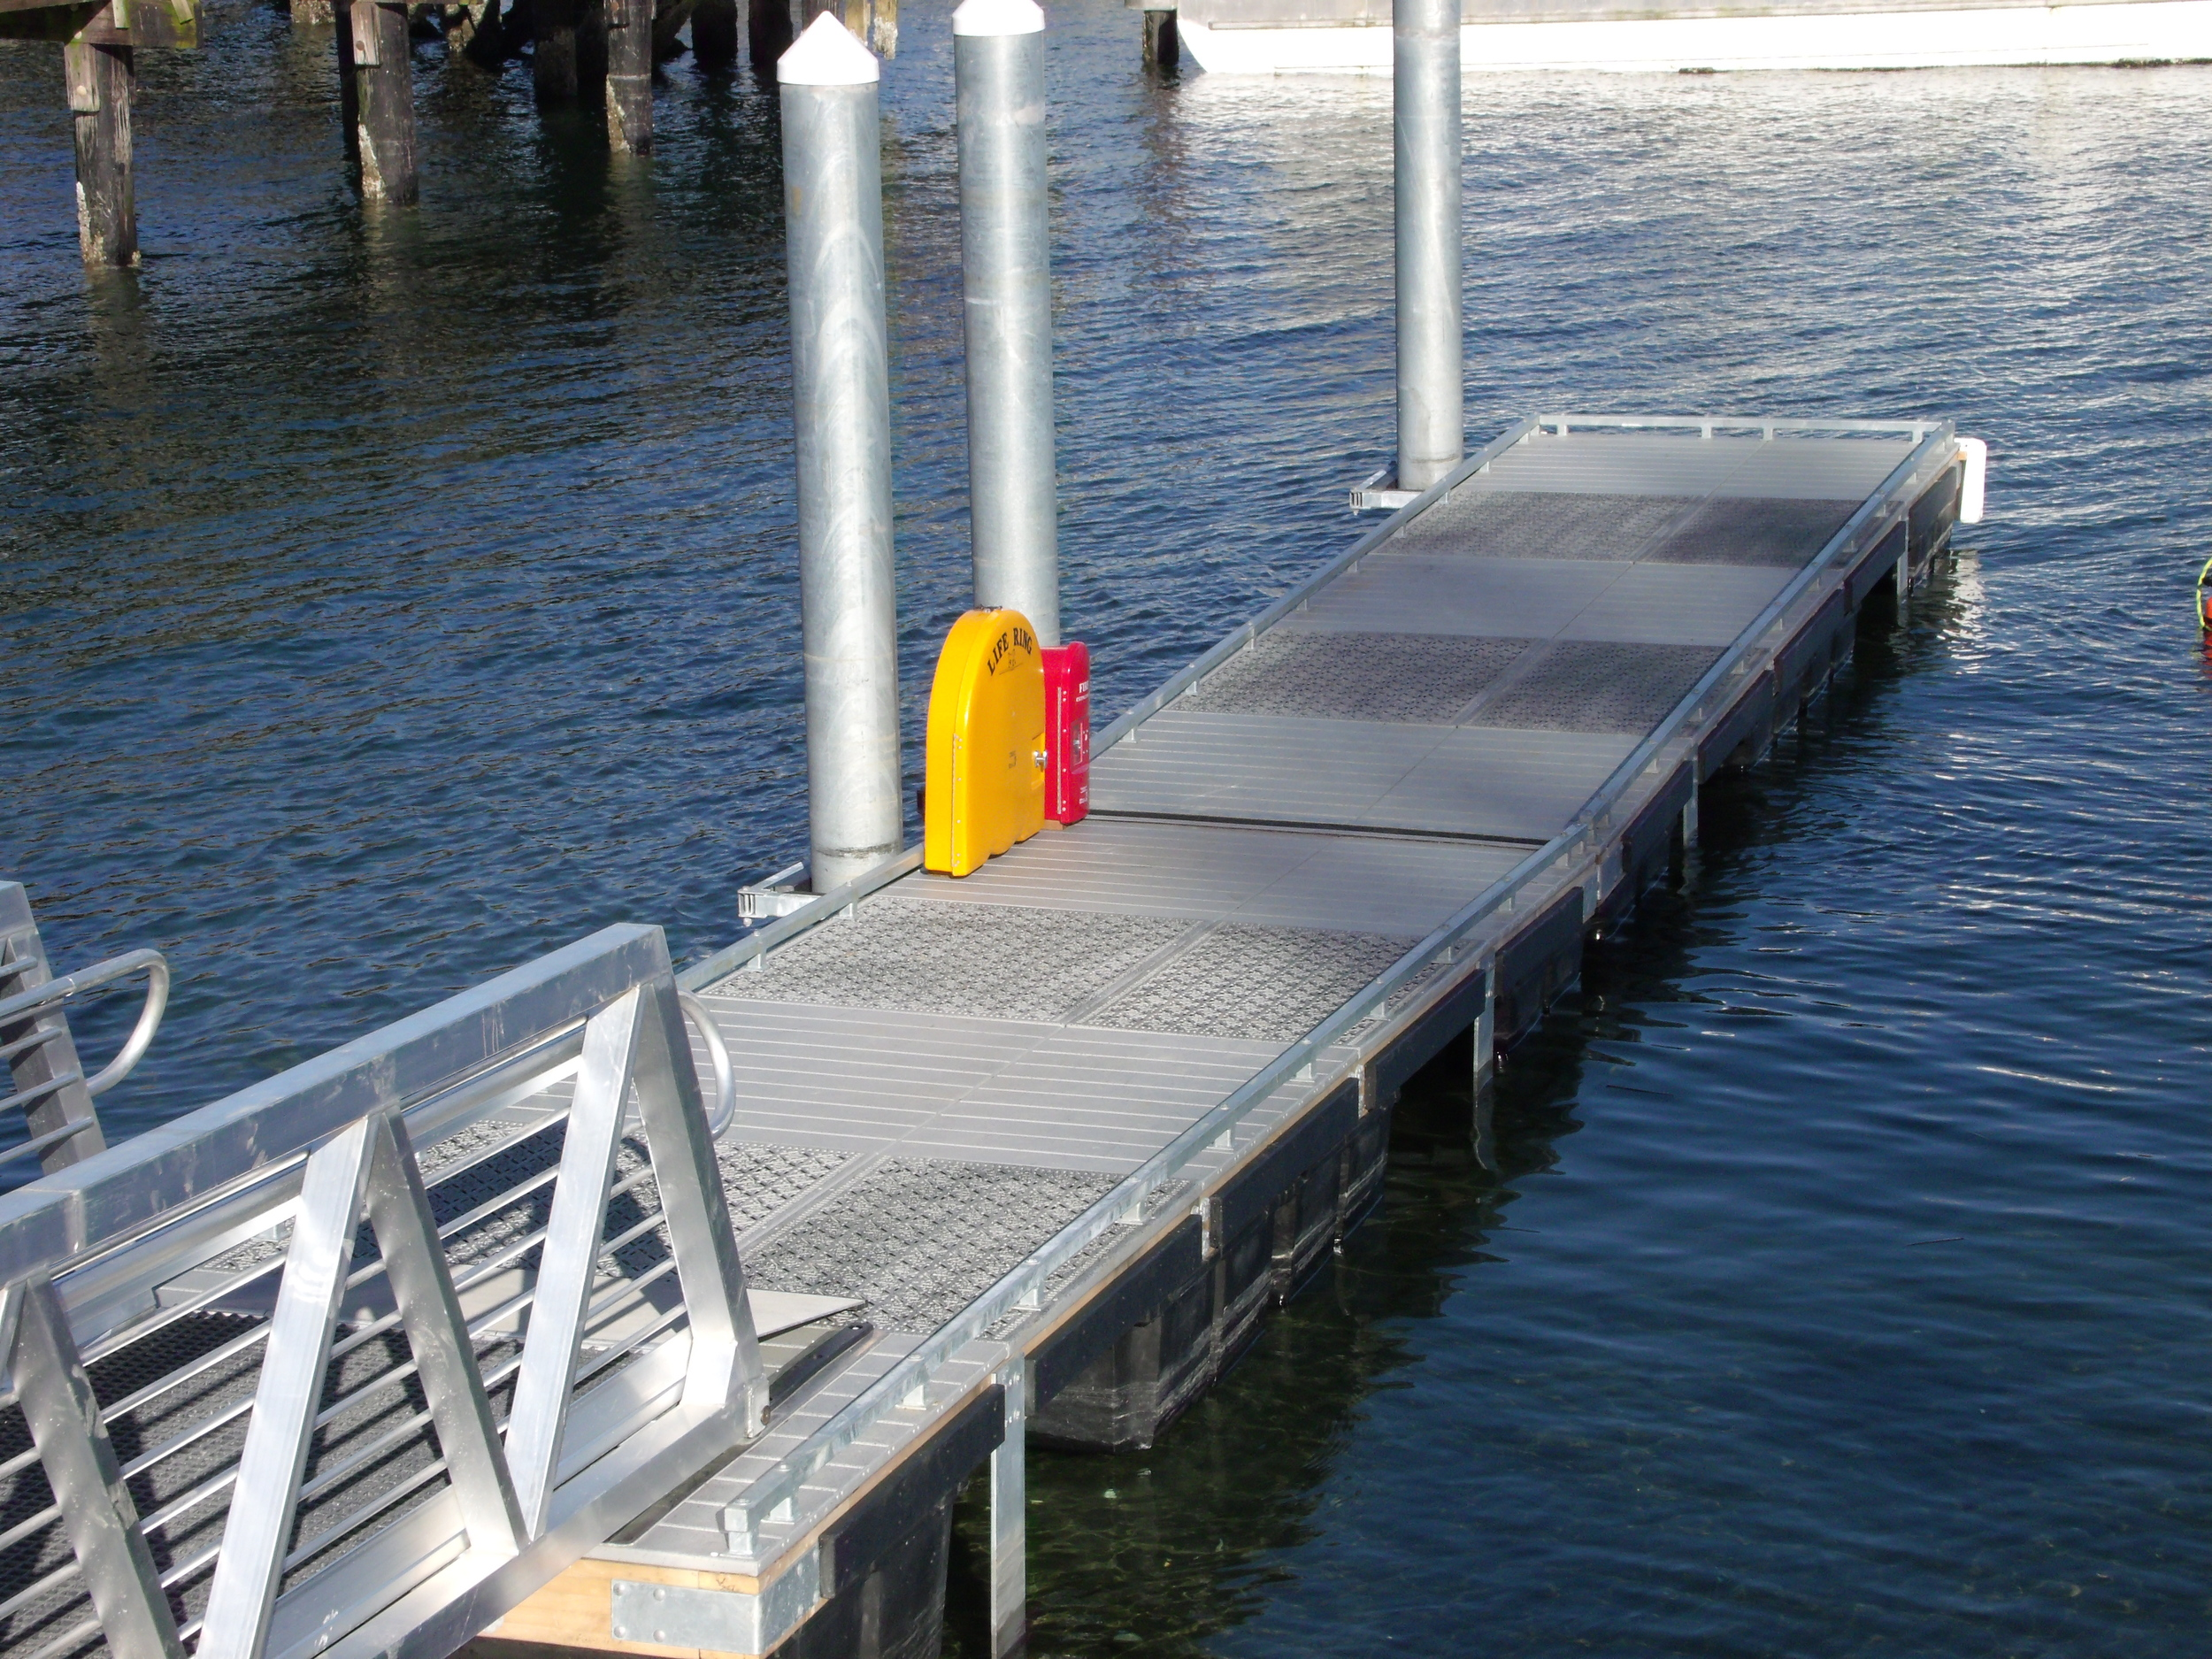 The Port of South Whidbey New Boat Ramp Dock at Langley, WA. Using Xccent Steel Dek Eco Series and Pier Series Decking. Click on the above picture to view more photos.